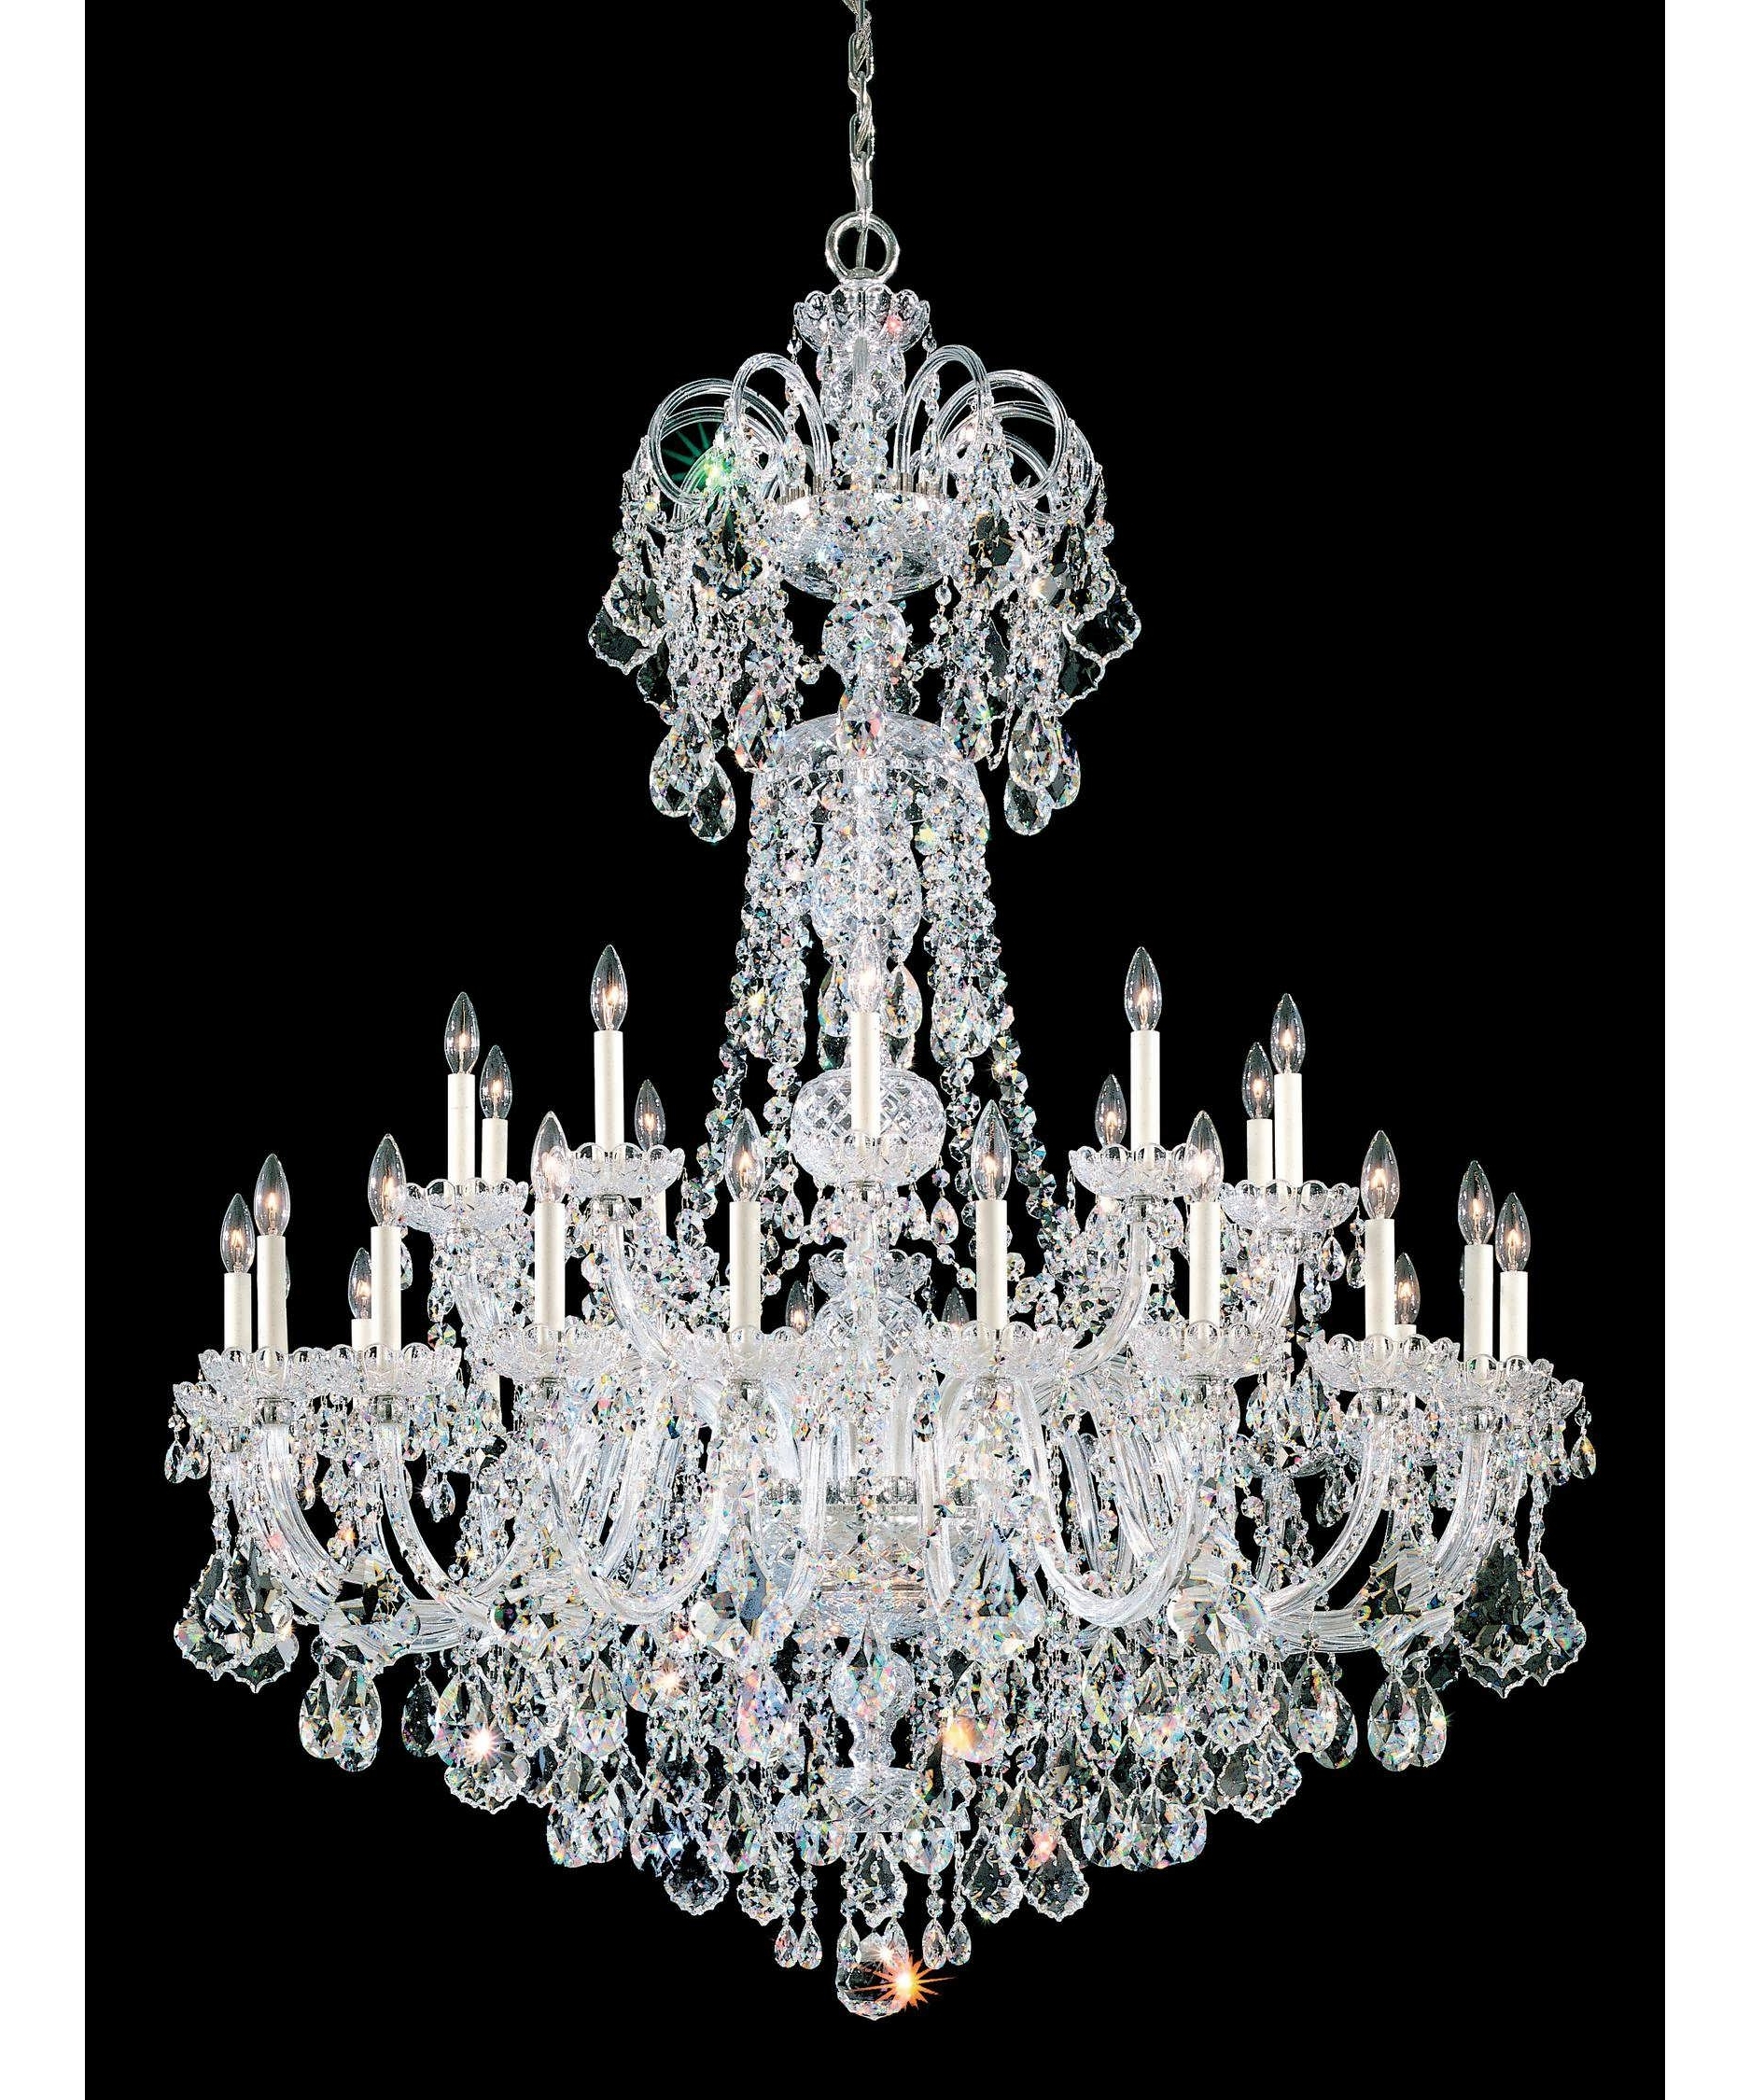 Chandelier : Beach Chandelier Murano Glass Chandelier Italian Intended For Current Acrylic Chandeliers (View 4 of 15)